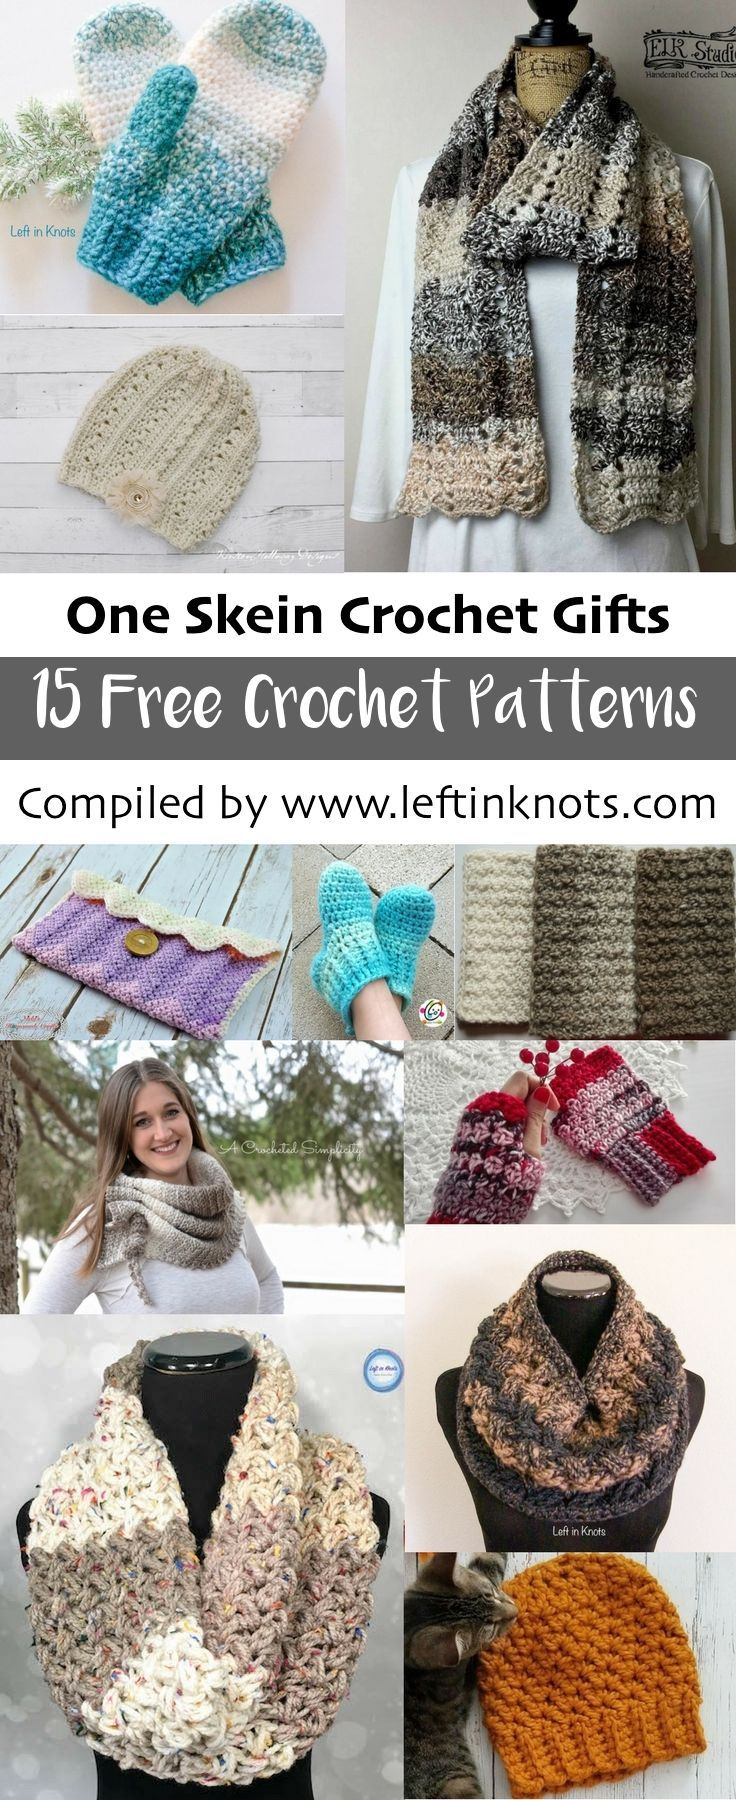 15 free one skein crochet projects! These free crochet patterns are simple,  fast and perfect for gifting this holiday season! One skein projects travel  well ...